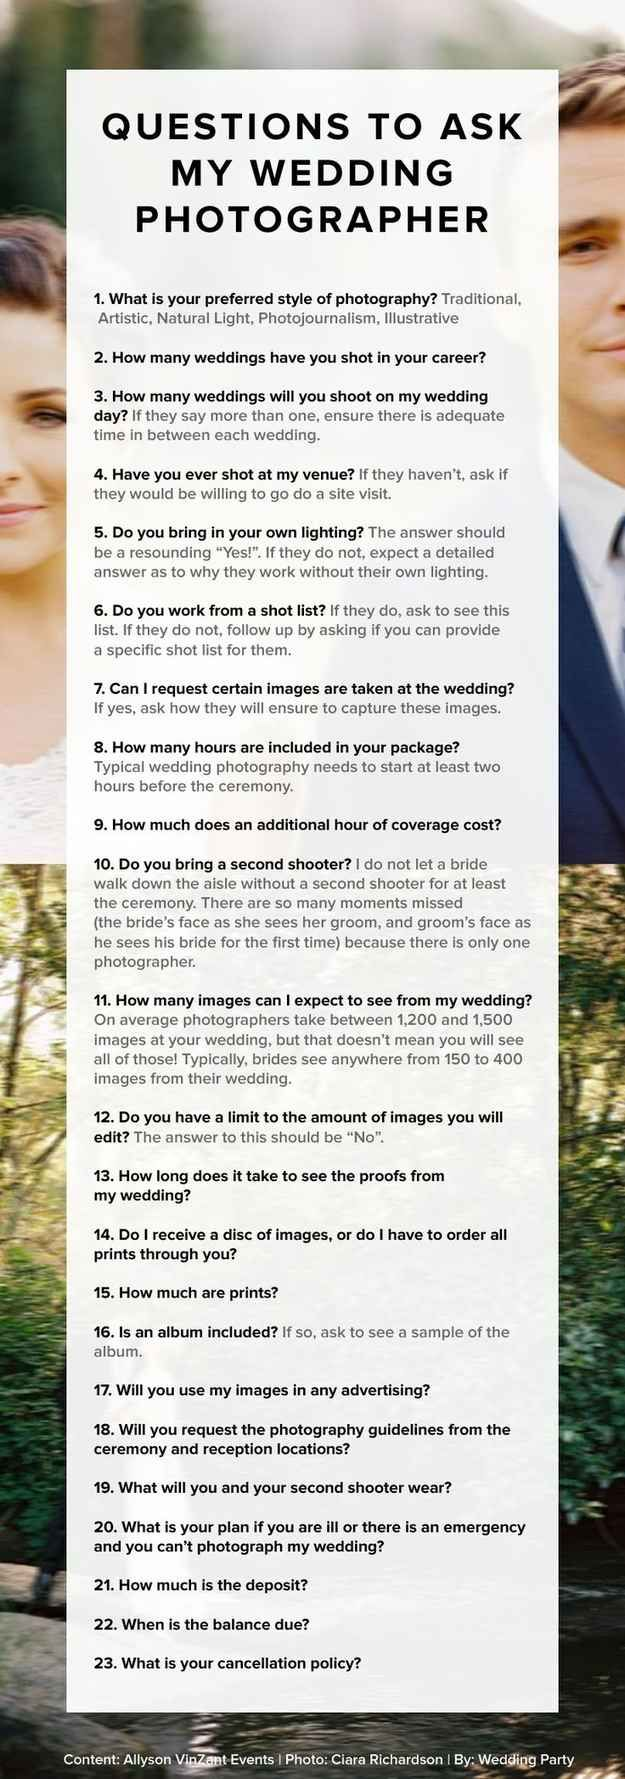 Ask wedding photographer